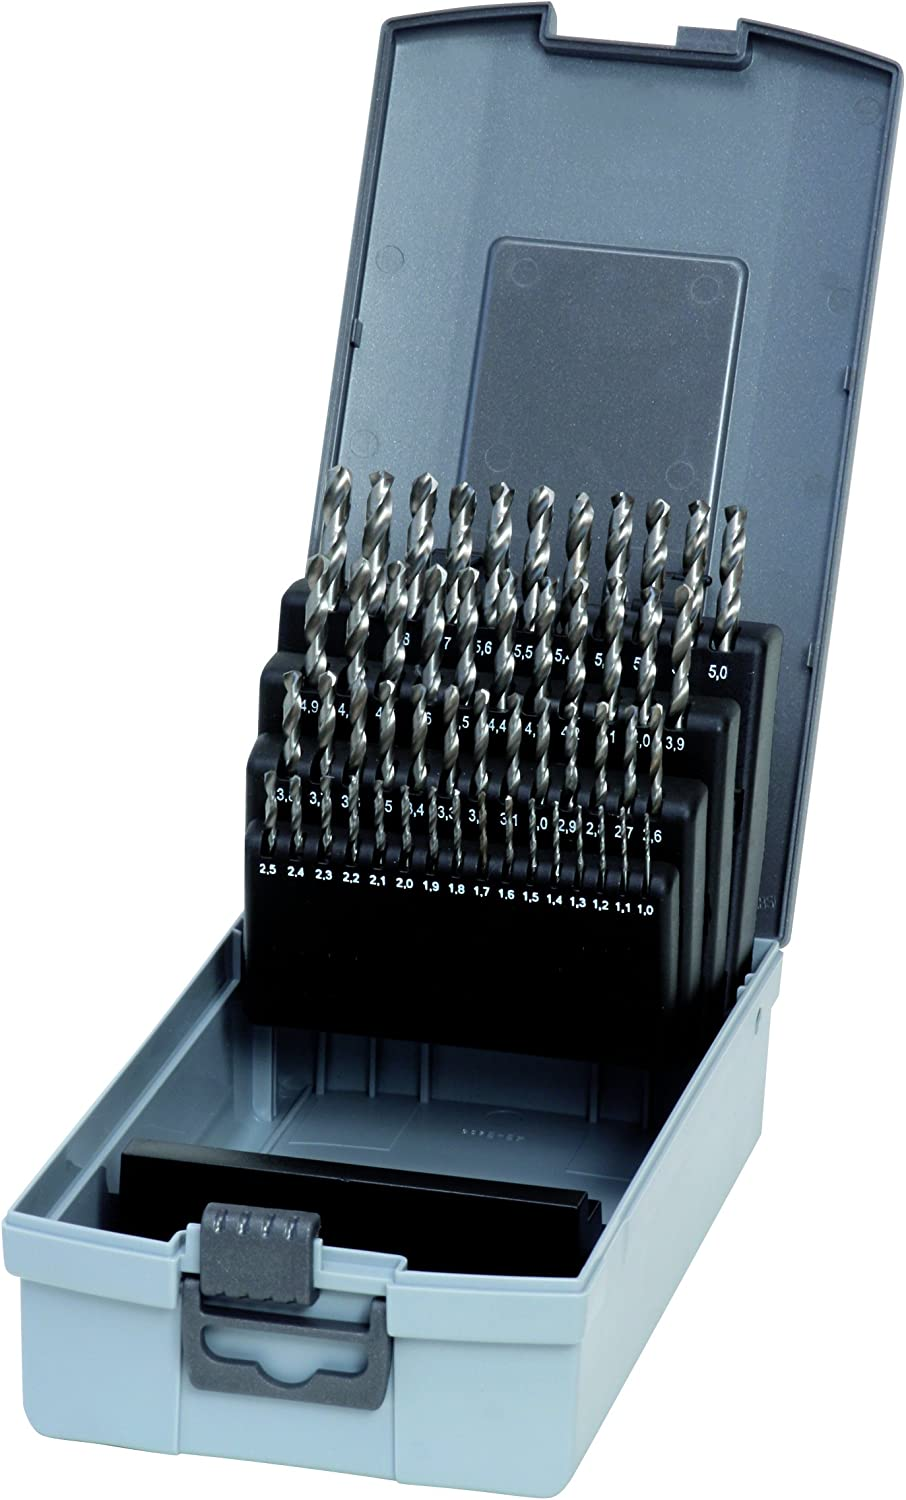 Gertus 1914110 Rose Box with 51 Twist 338 HSS- Bits Drill Max 68% OFF in DIN Luxury